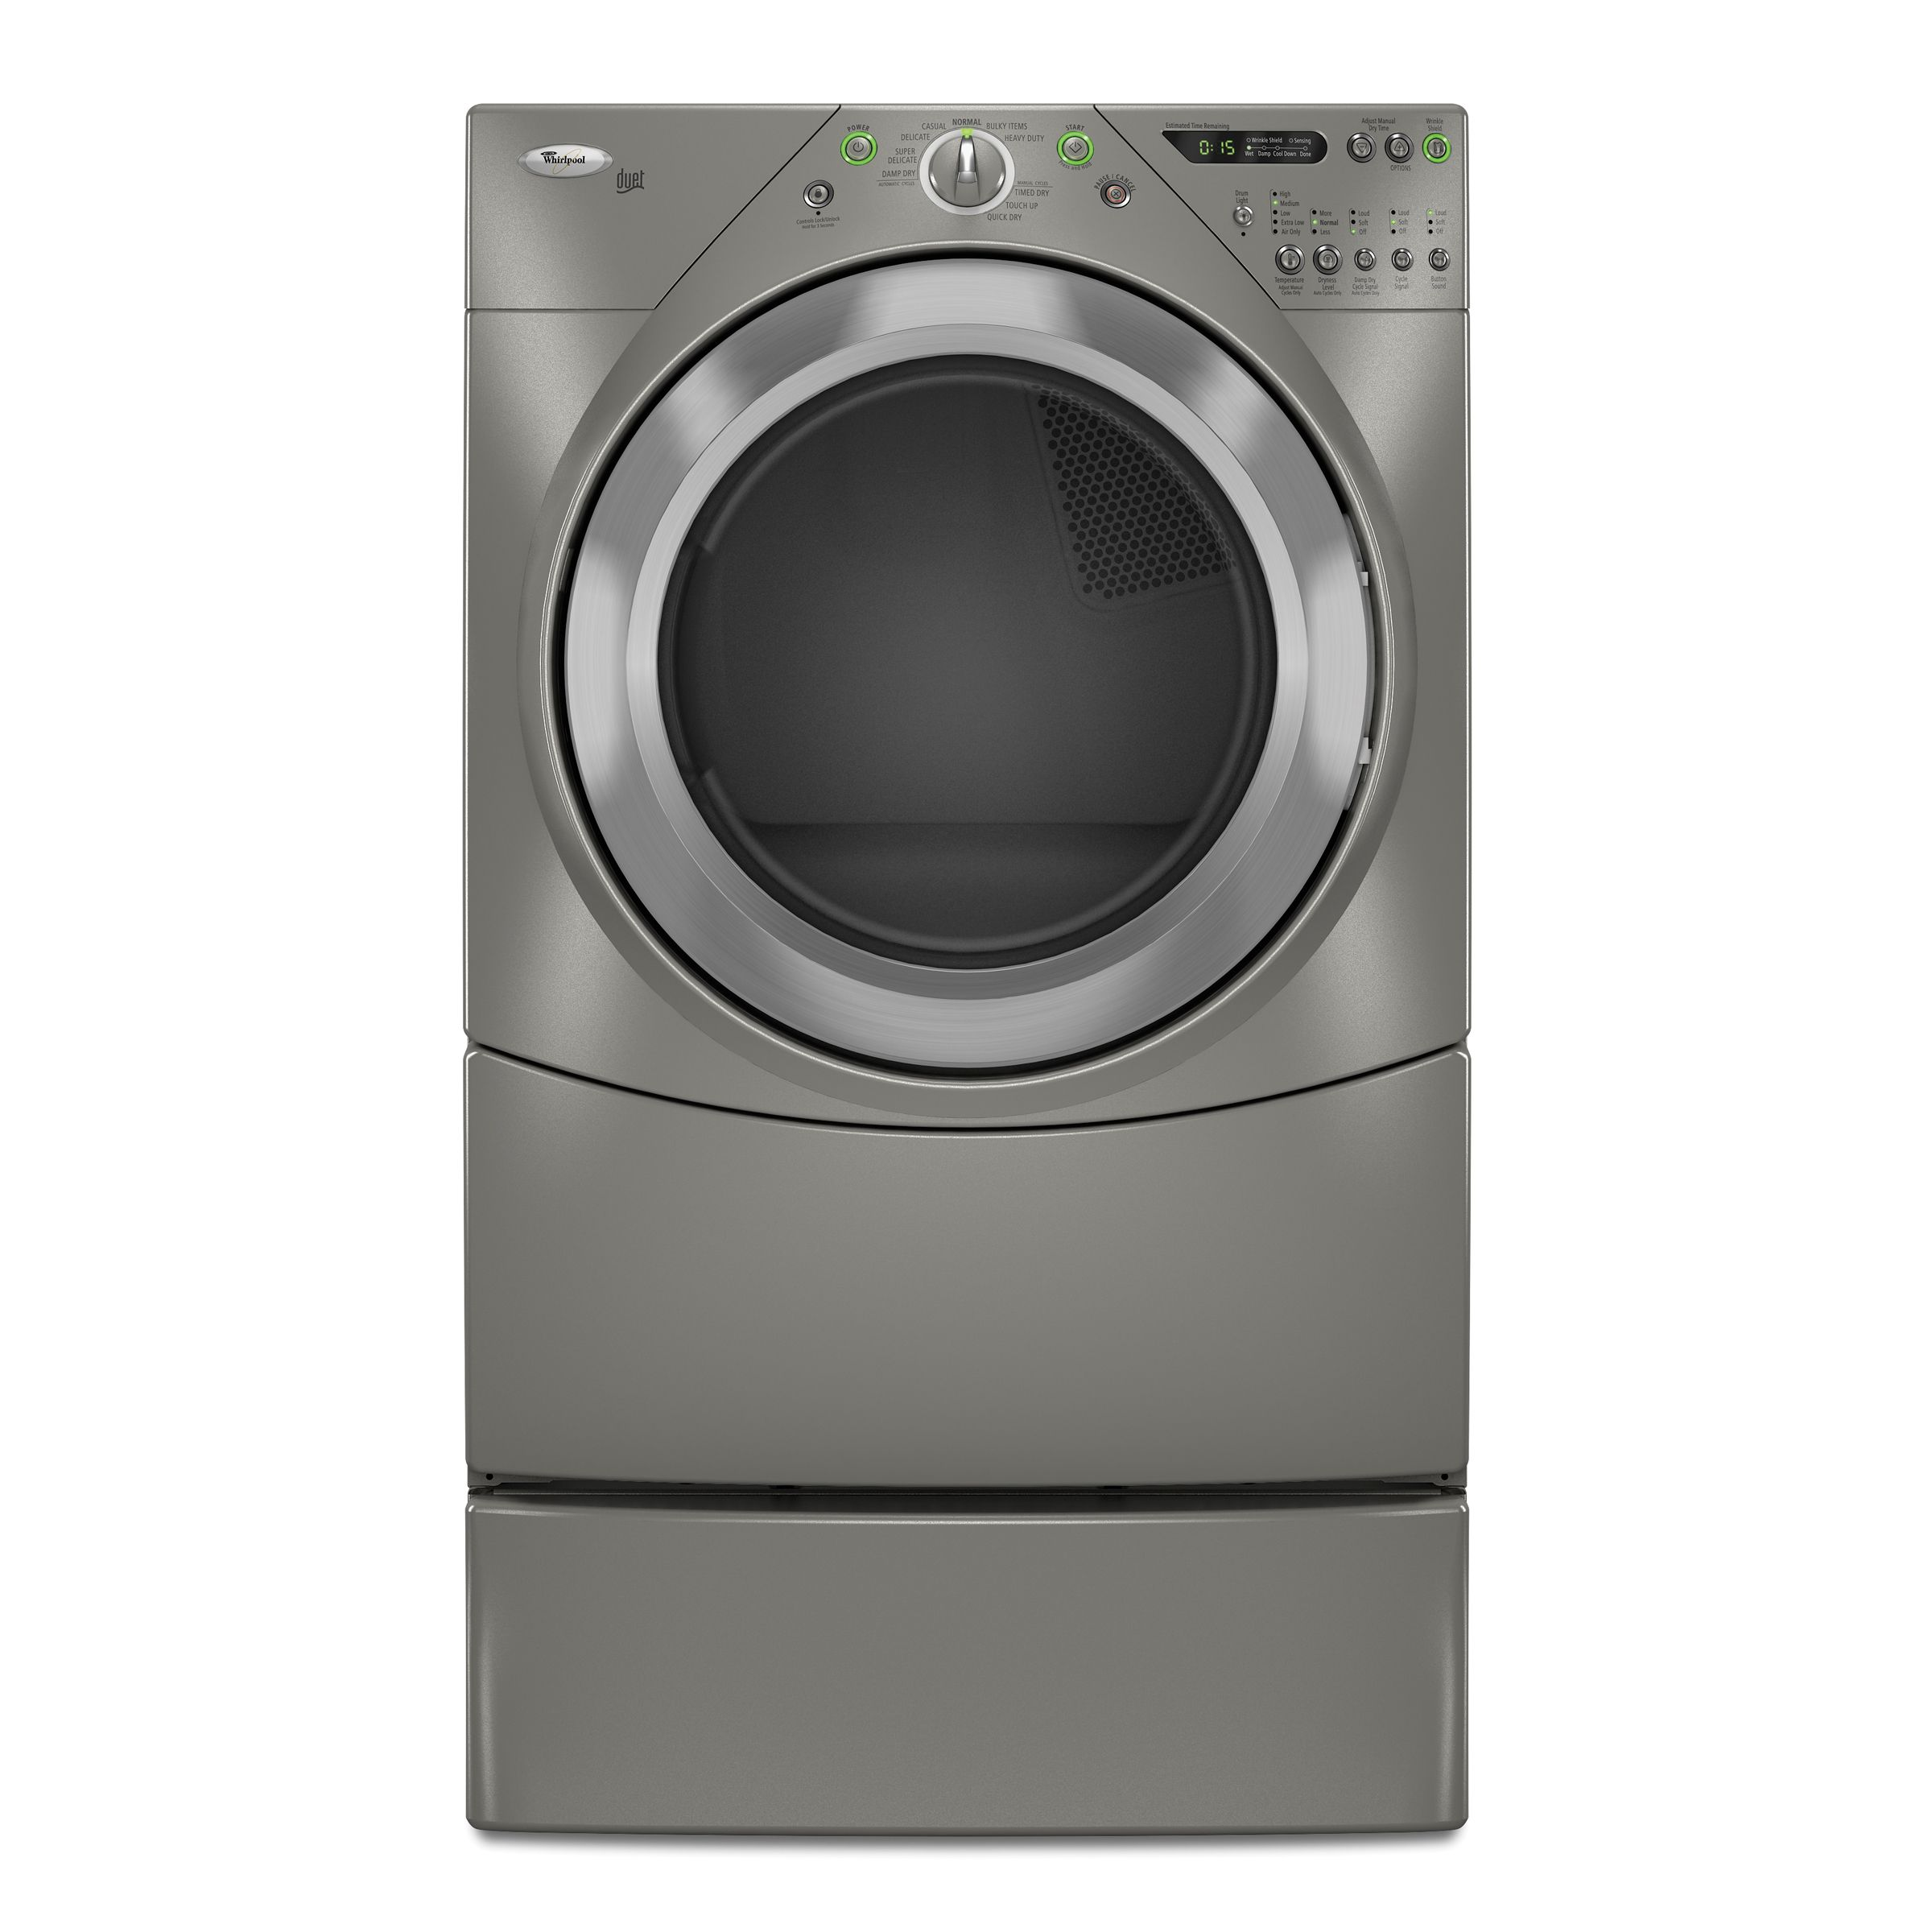 Whirlpool Duet HT® 4.0 cu. ft. I.E.C. Ultra Capacity Plus Front-Load Washer